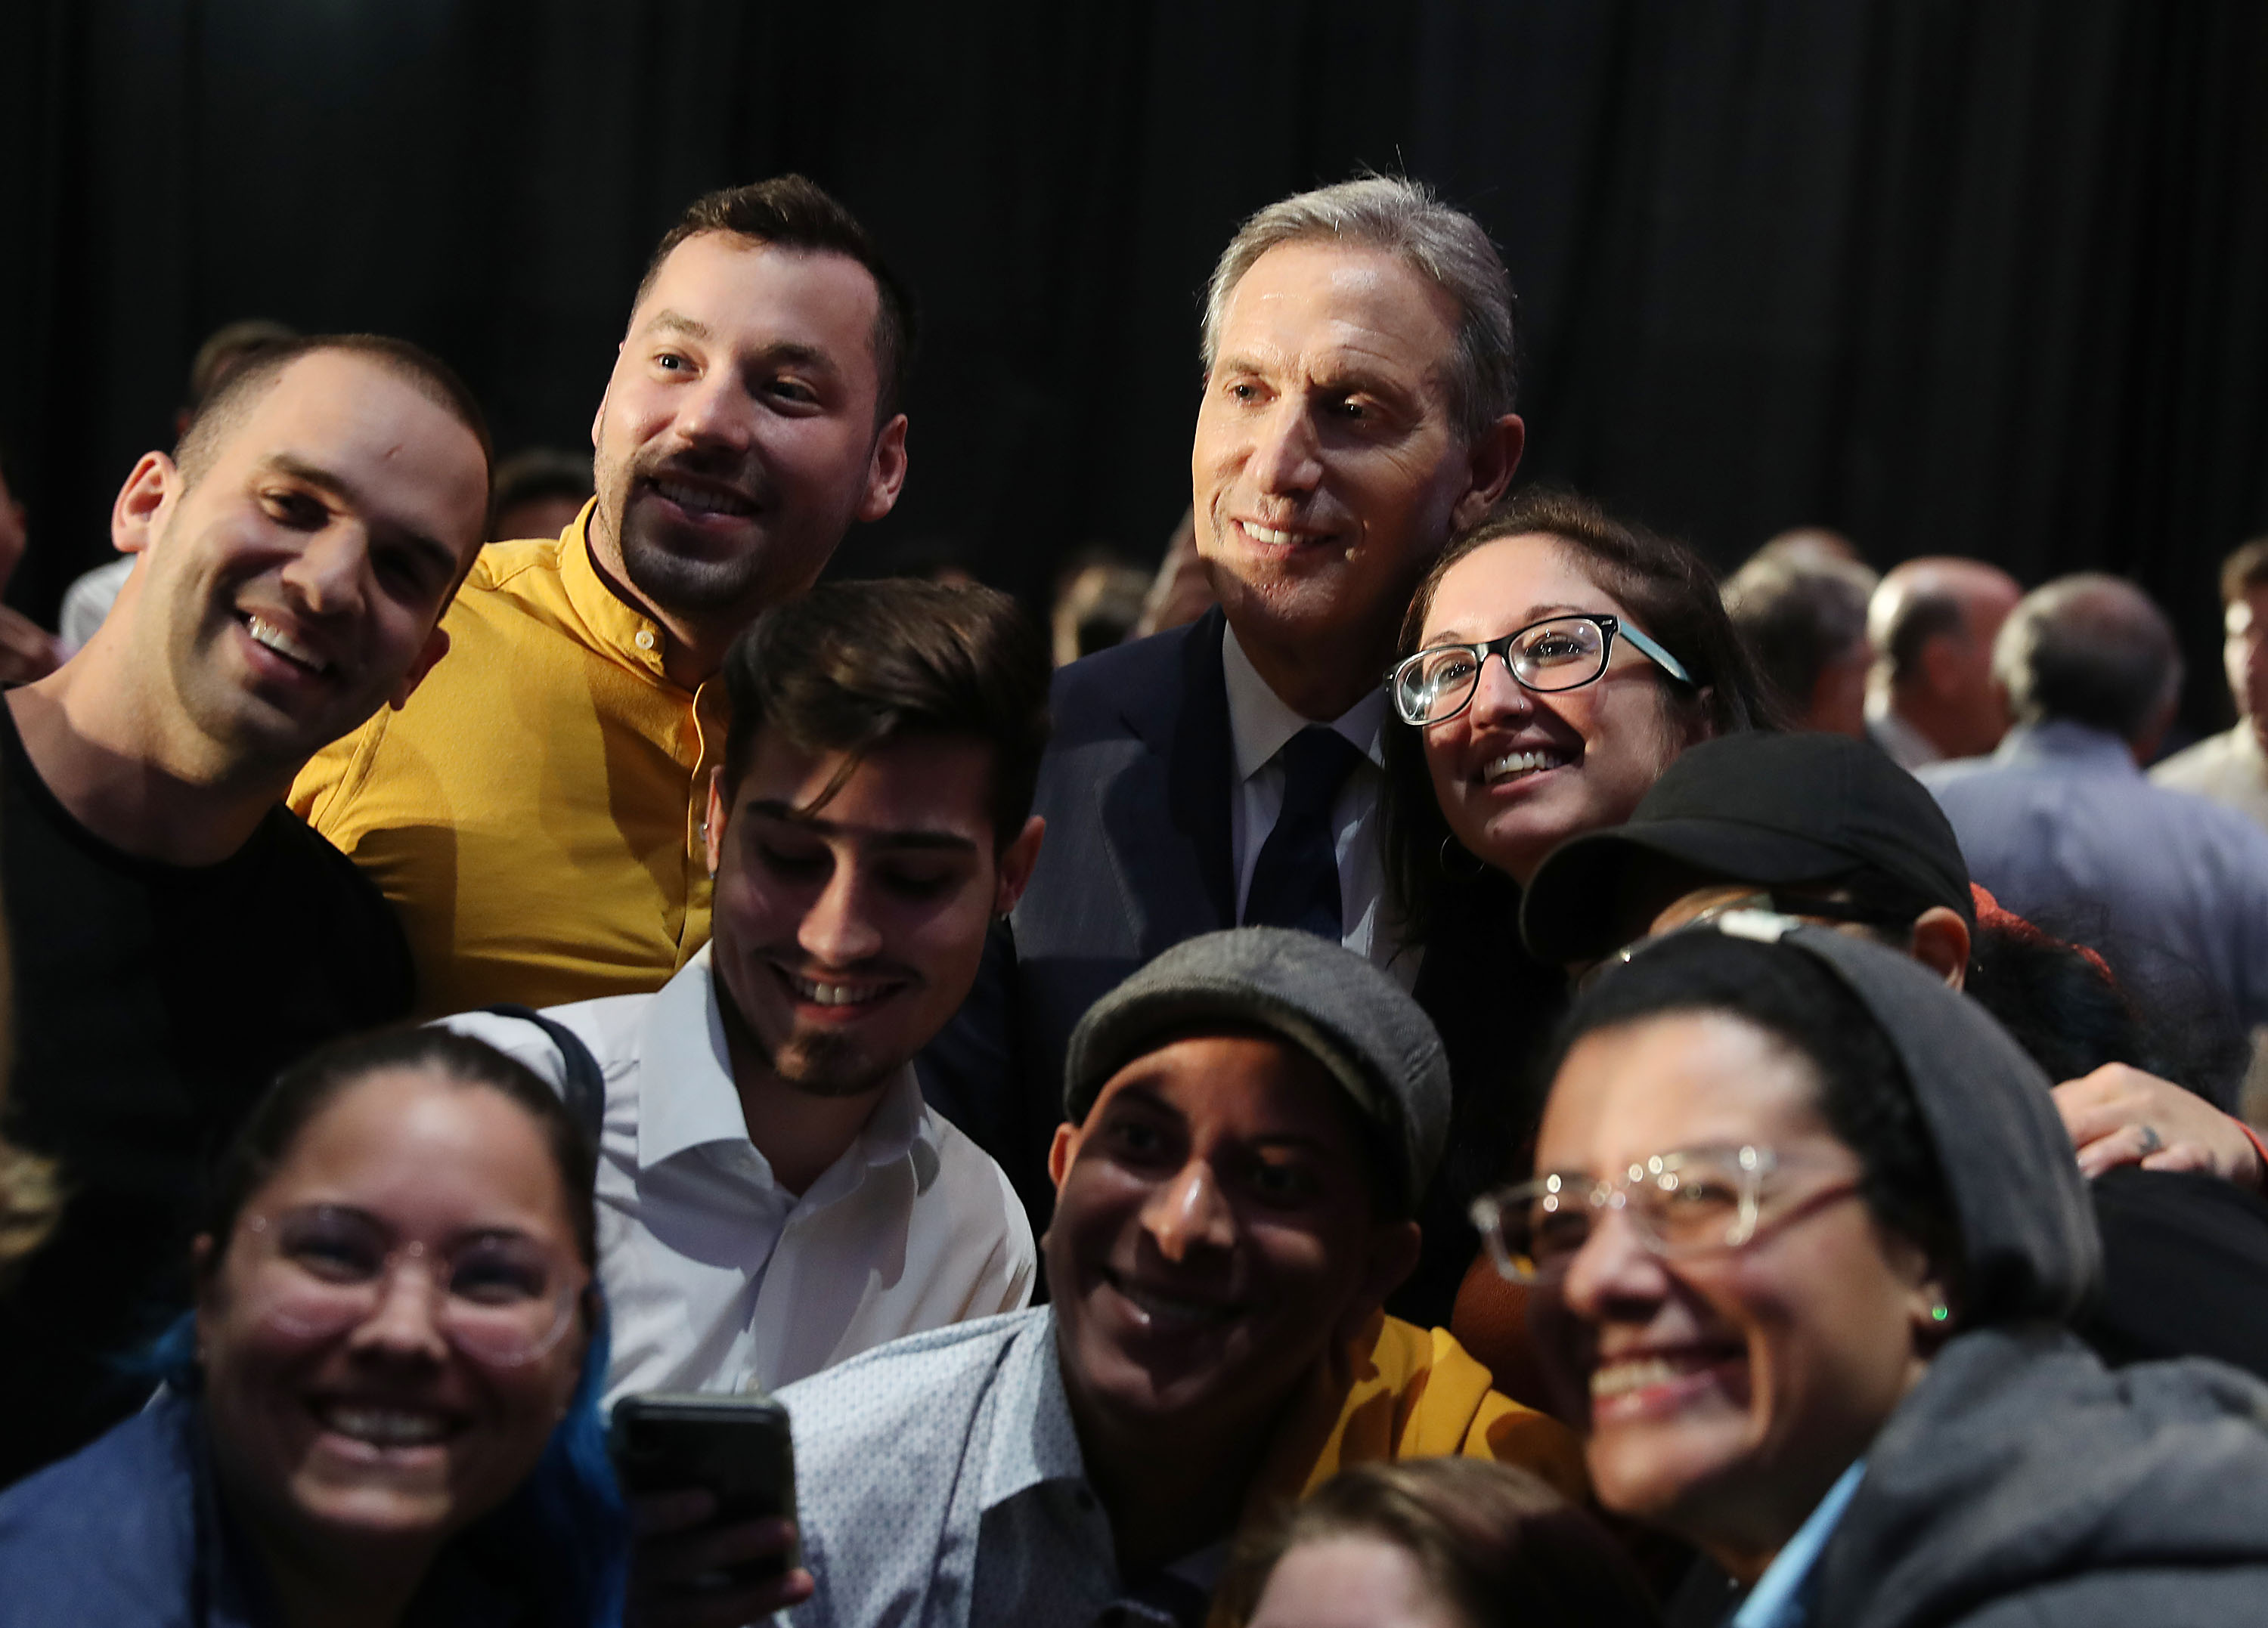 Former Starbucks CEO Howard Schultz poses for a picture with people during a stop at Miami Dade College as he seeks a possible independent presidency run on March 13, 2019 in Miami, Florida. (Photo by Joe Raedle/Getty Images)